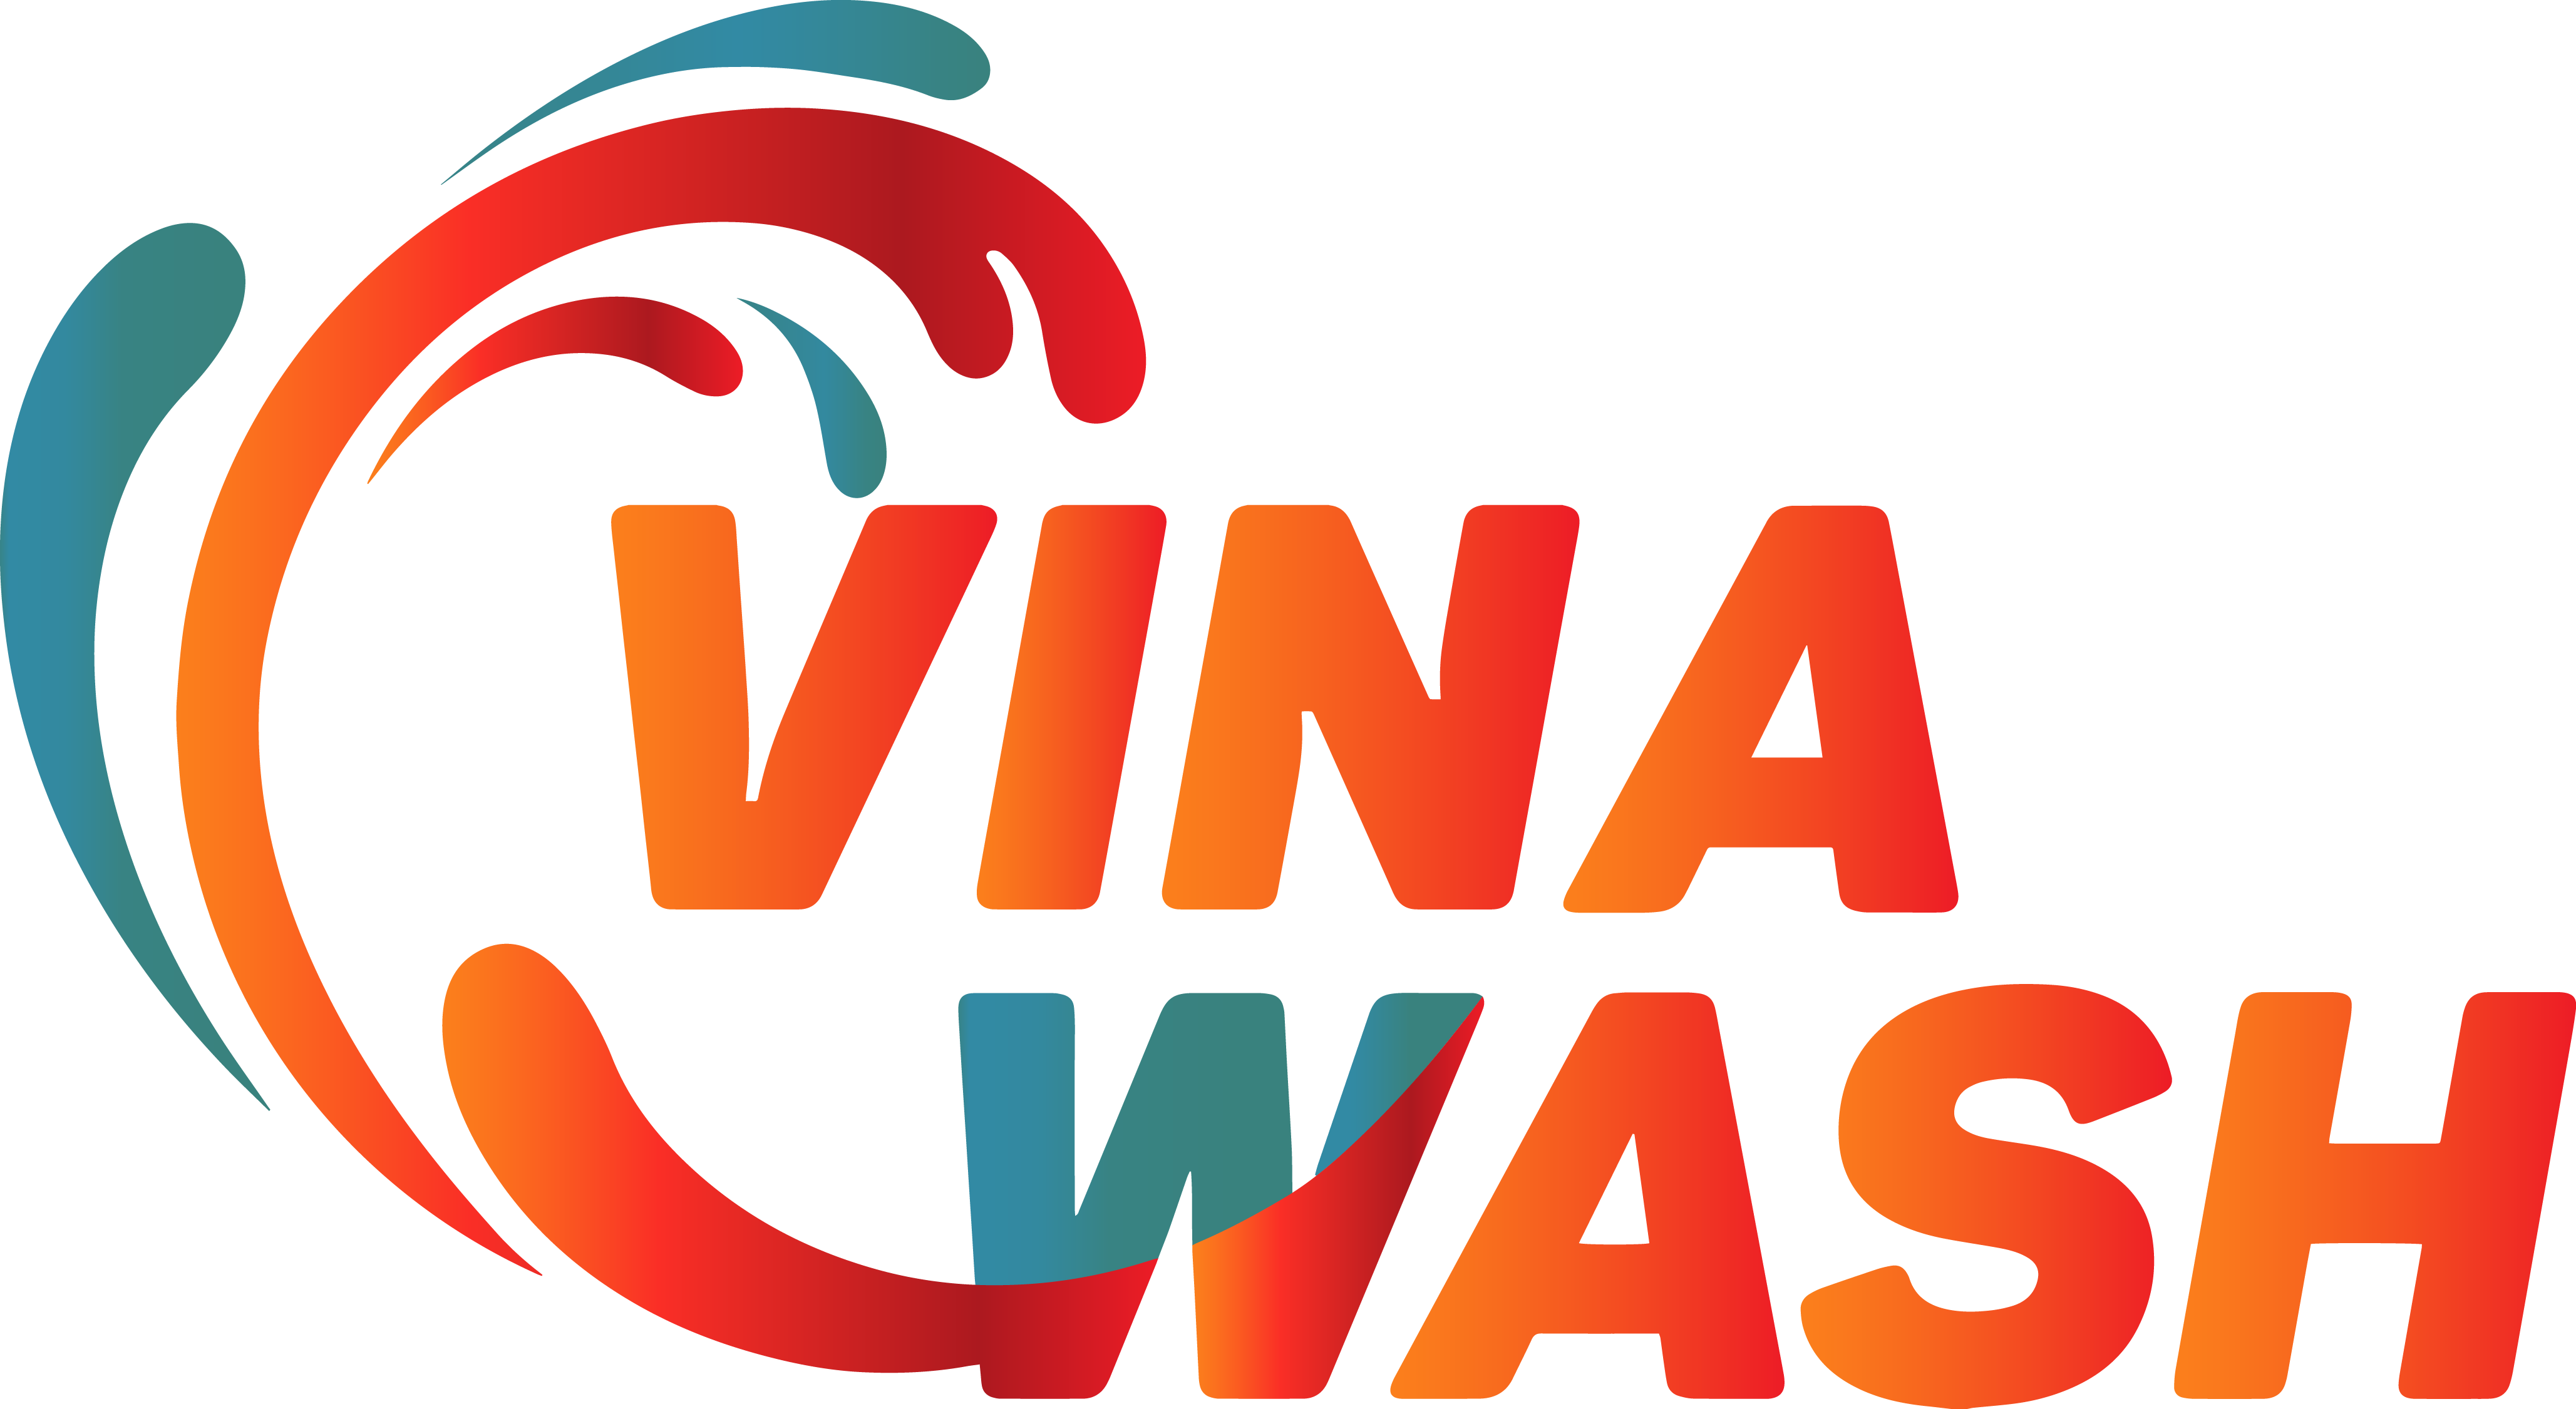 VinaWash Takes its Place as Vietnam's Top Car Wash and Detailing Venture, Eyes Further Expansion